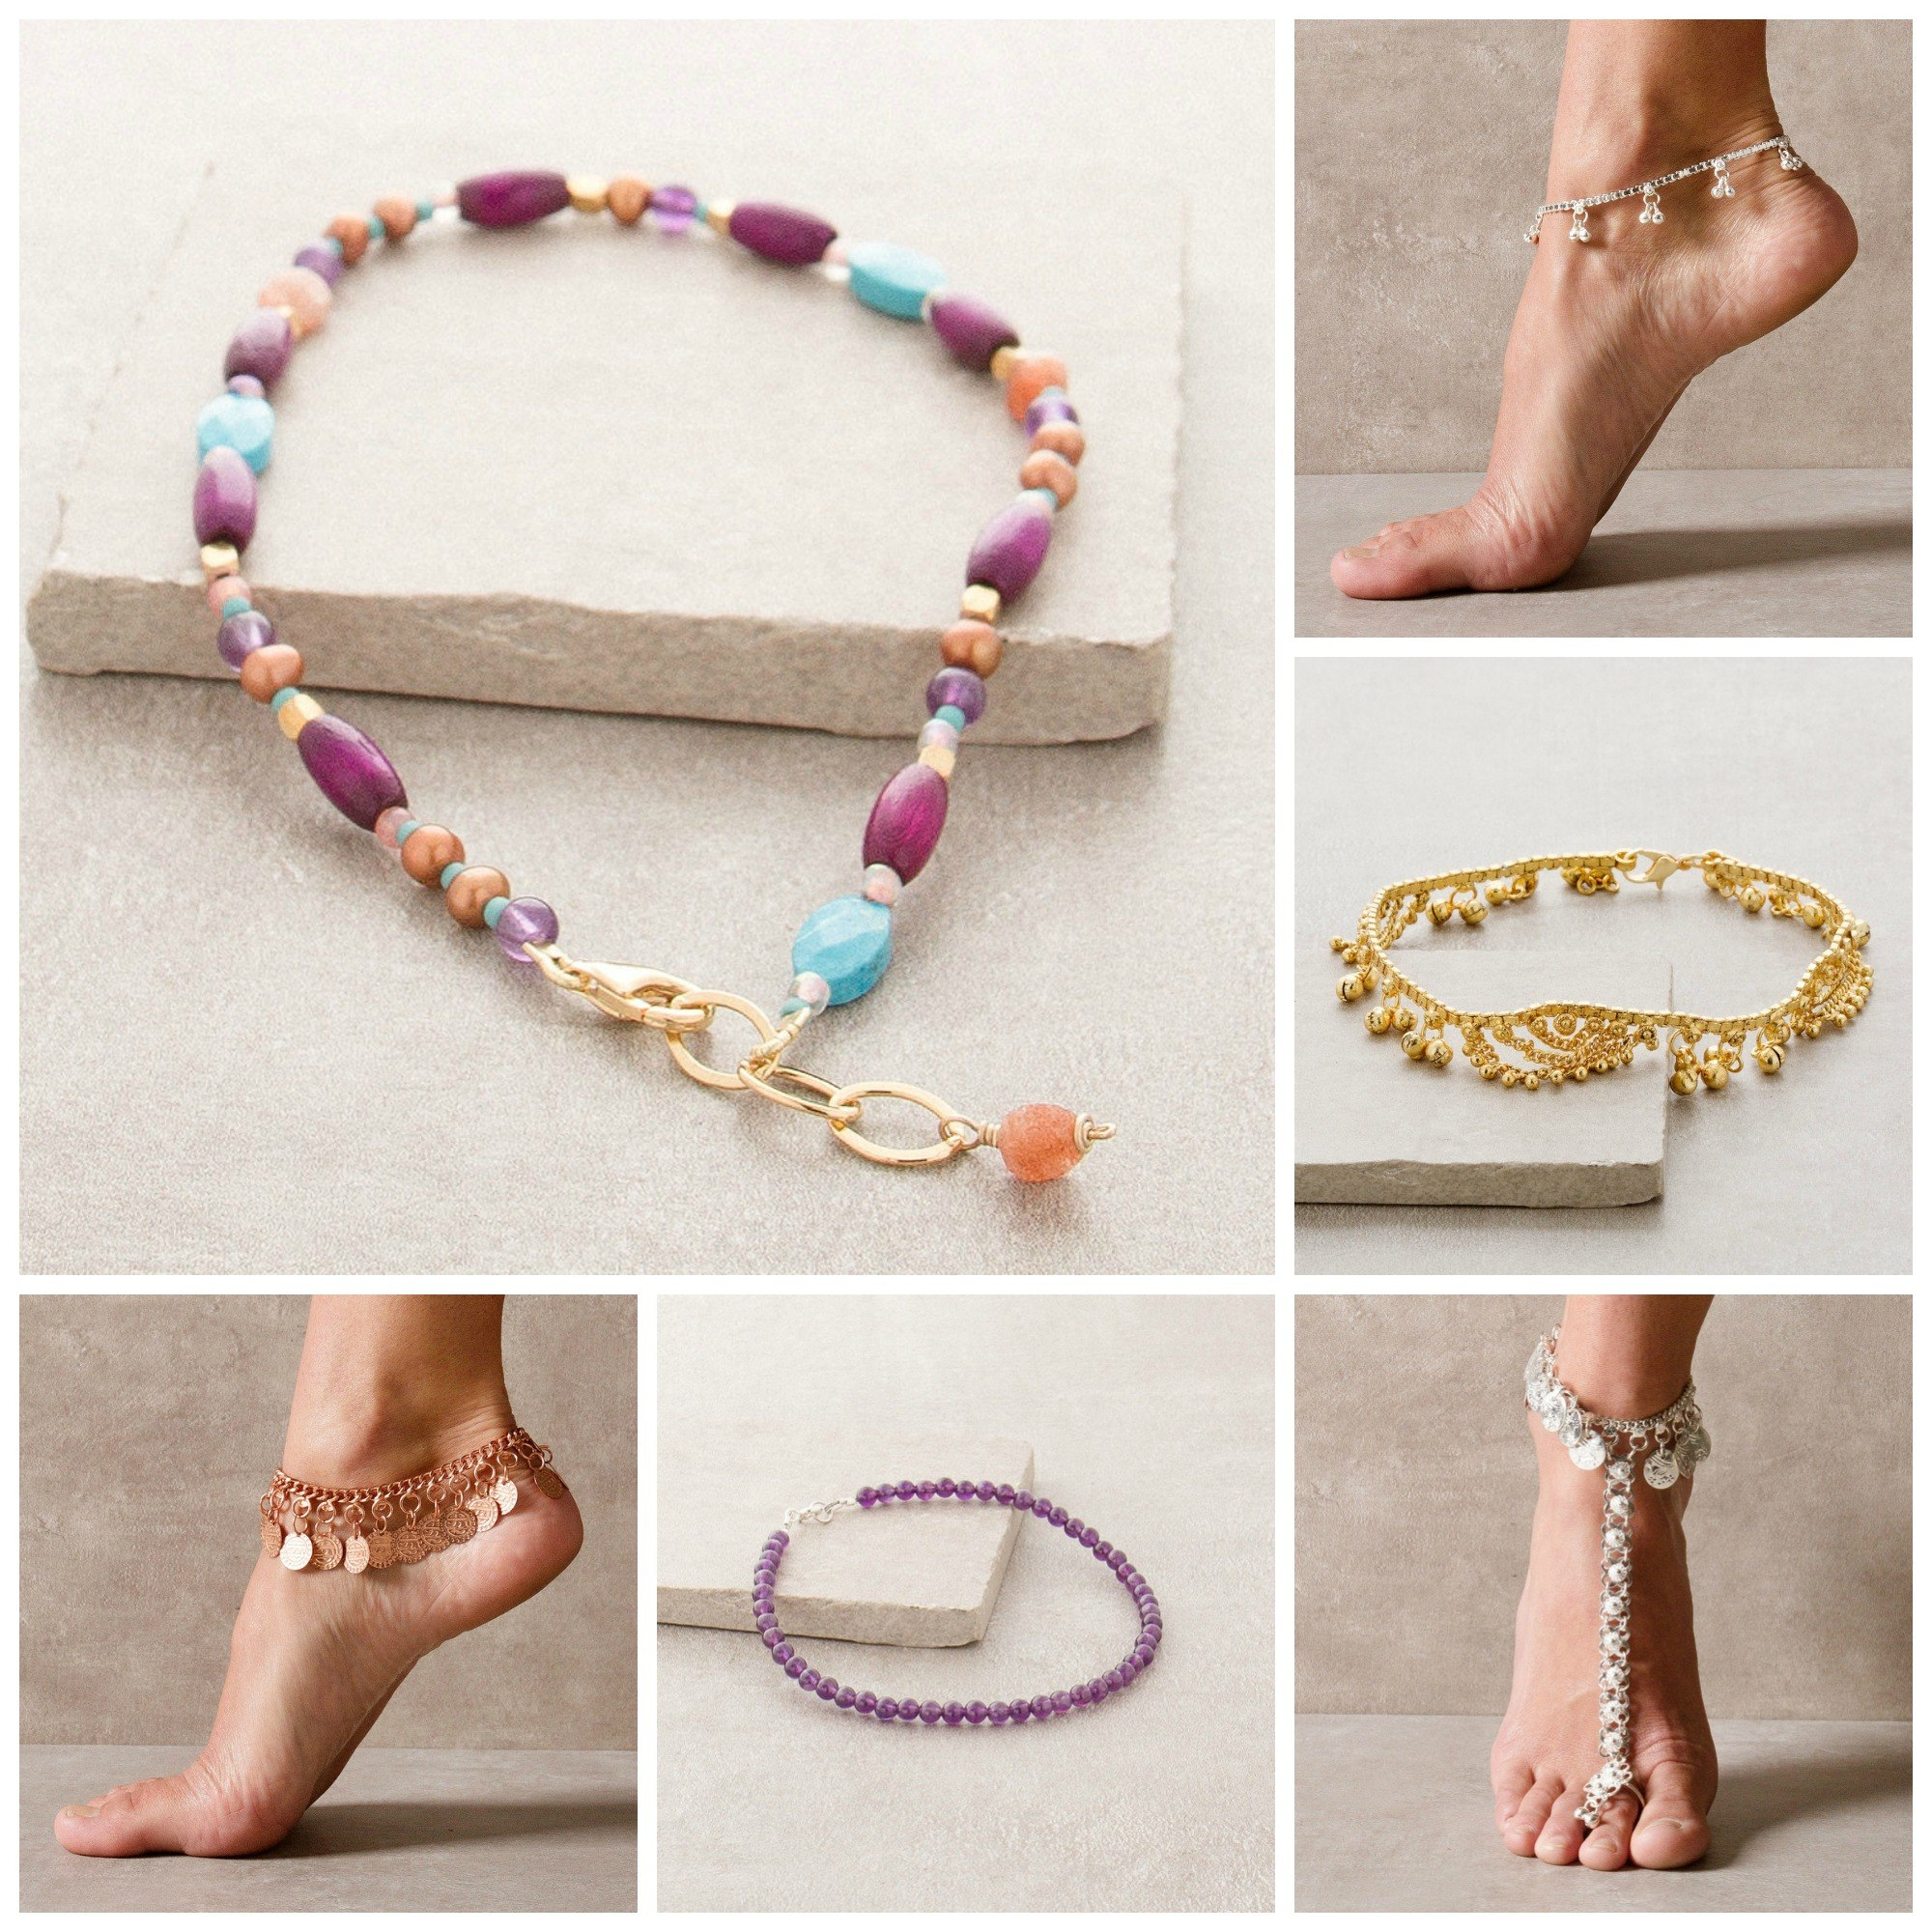 attractive ankle alert clever make or queen will meaning for fashionable shocking stylish spades anklet anklets you bracelets centerpieces tags silly idea sweet bracelet of astounding ideas women cool symbolism after unique design